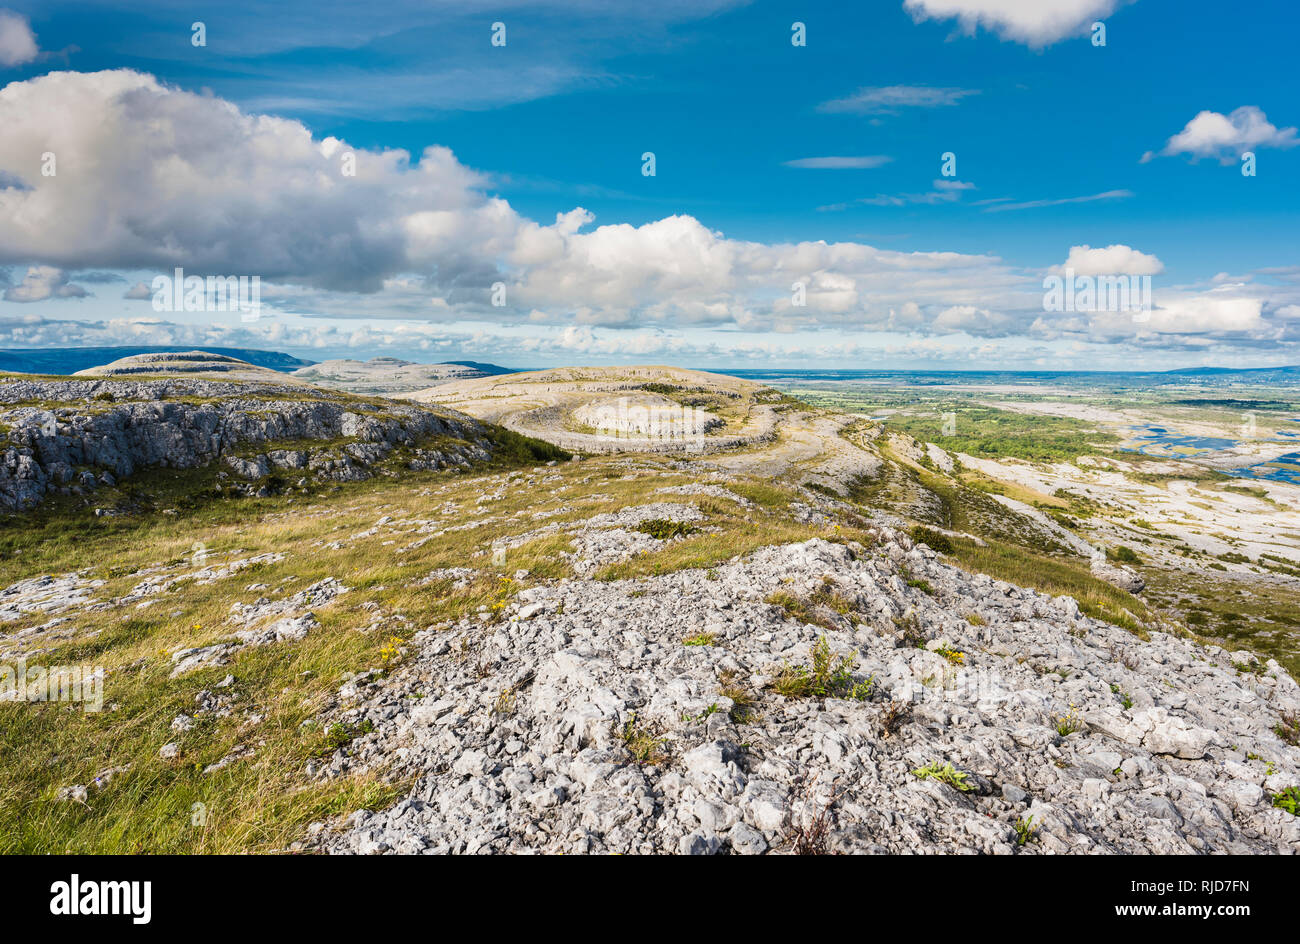 View from the top of Mullaghmore Mountain, The Burren, County Clare, Ireland, with Slieve Roe and the flat limestone pavement of the Gort Lowlands - Stock Image